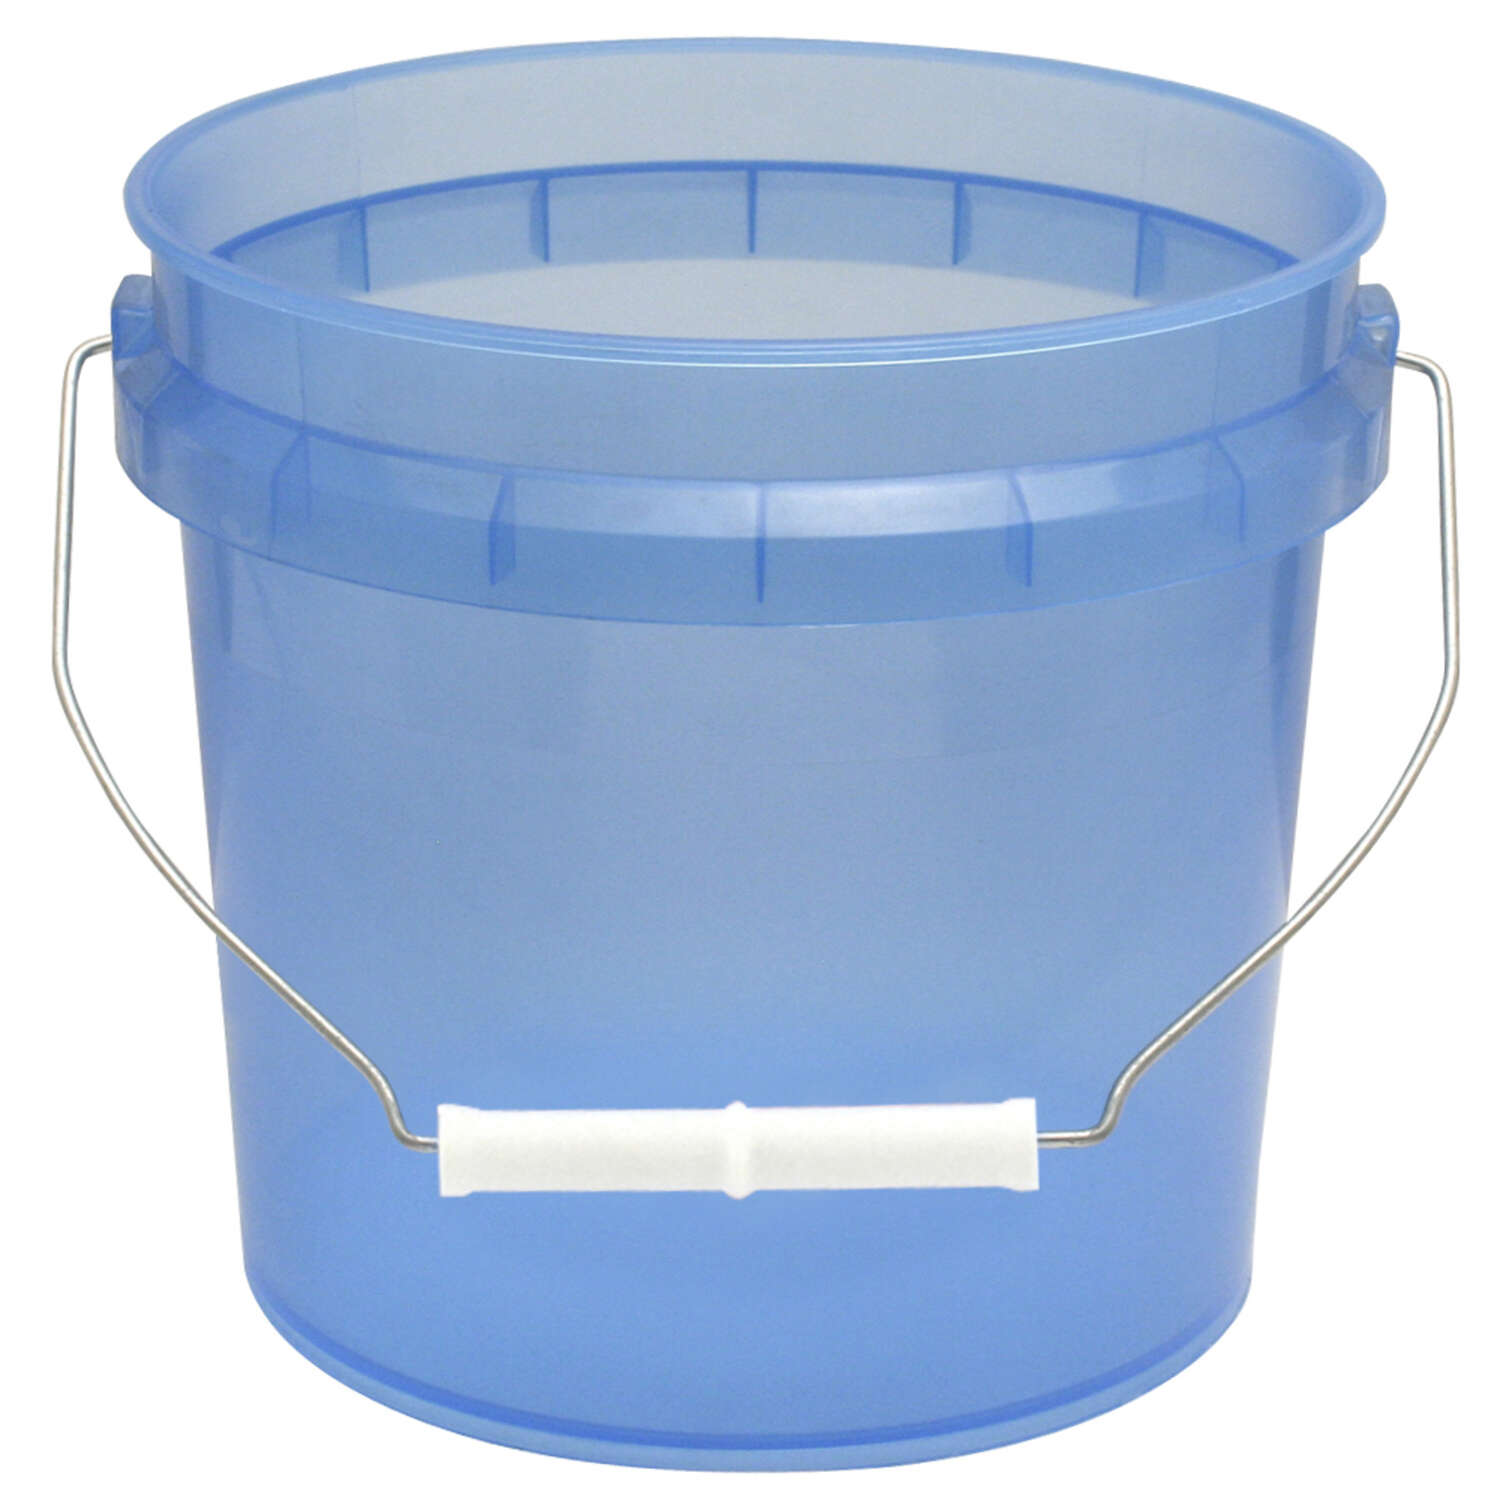 Leaktite  Blue  1 gal. Plastic  Bucket